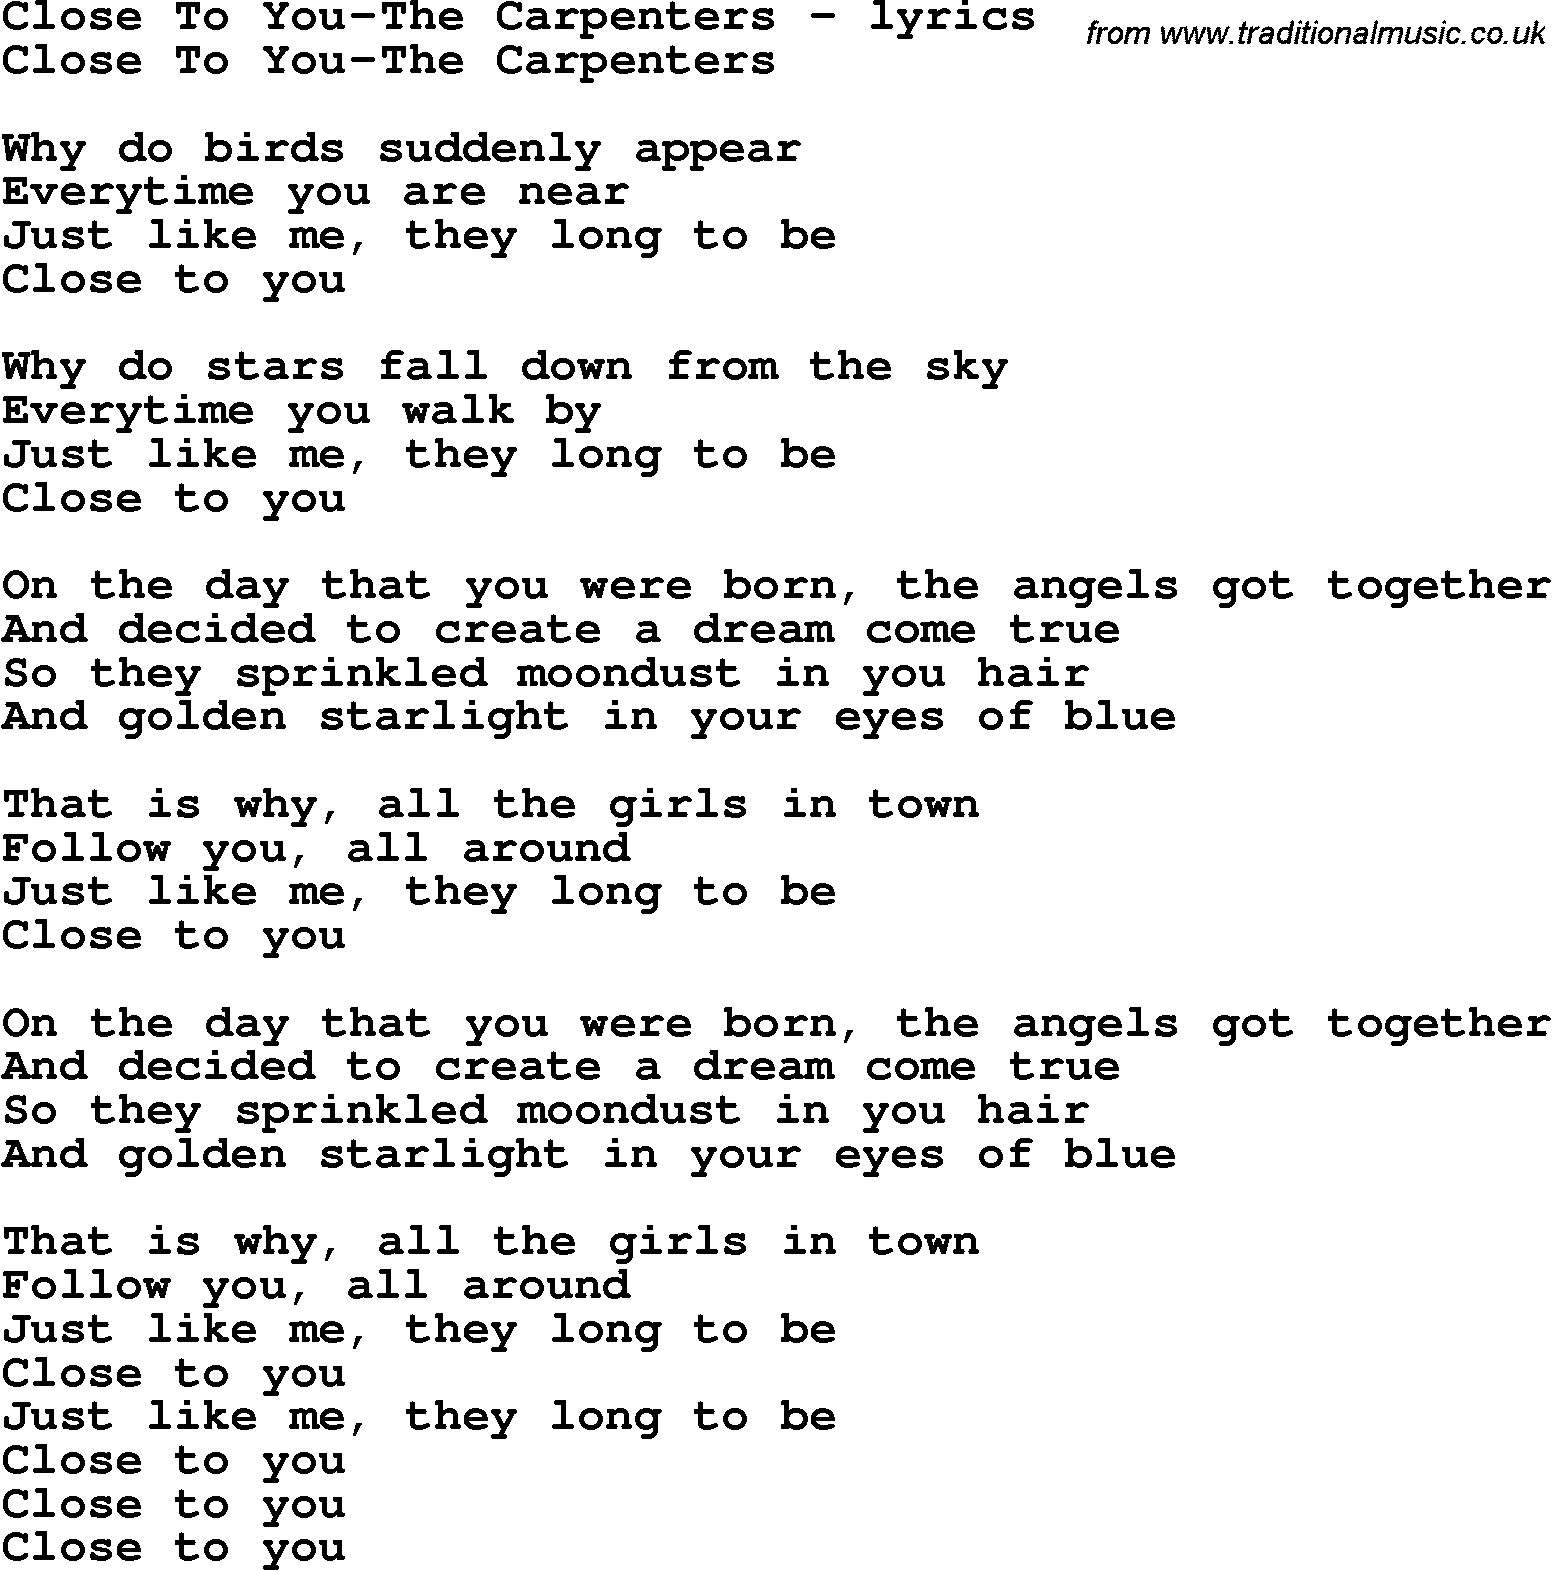 Httptraditionalmusiclove lyrics chordspng httptraditionalmusiclove lyrics chordspngclosetoyou thecarpenterslyg 70s childhood pinterest carpenter and songs hexwebz Choice Image